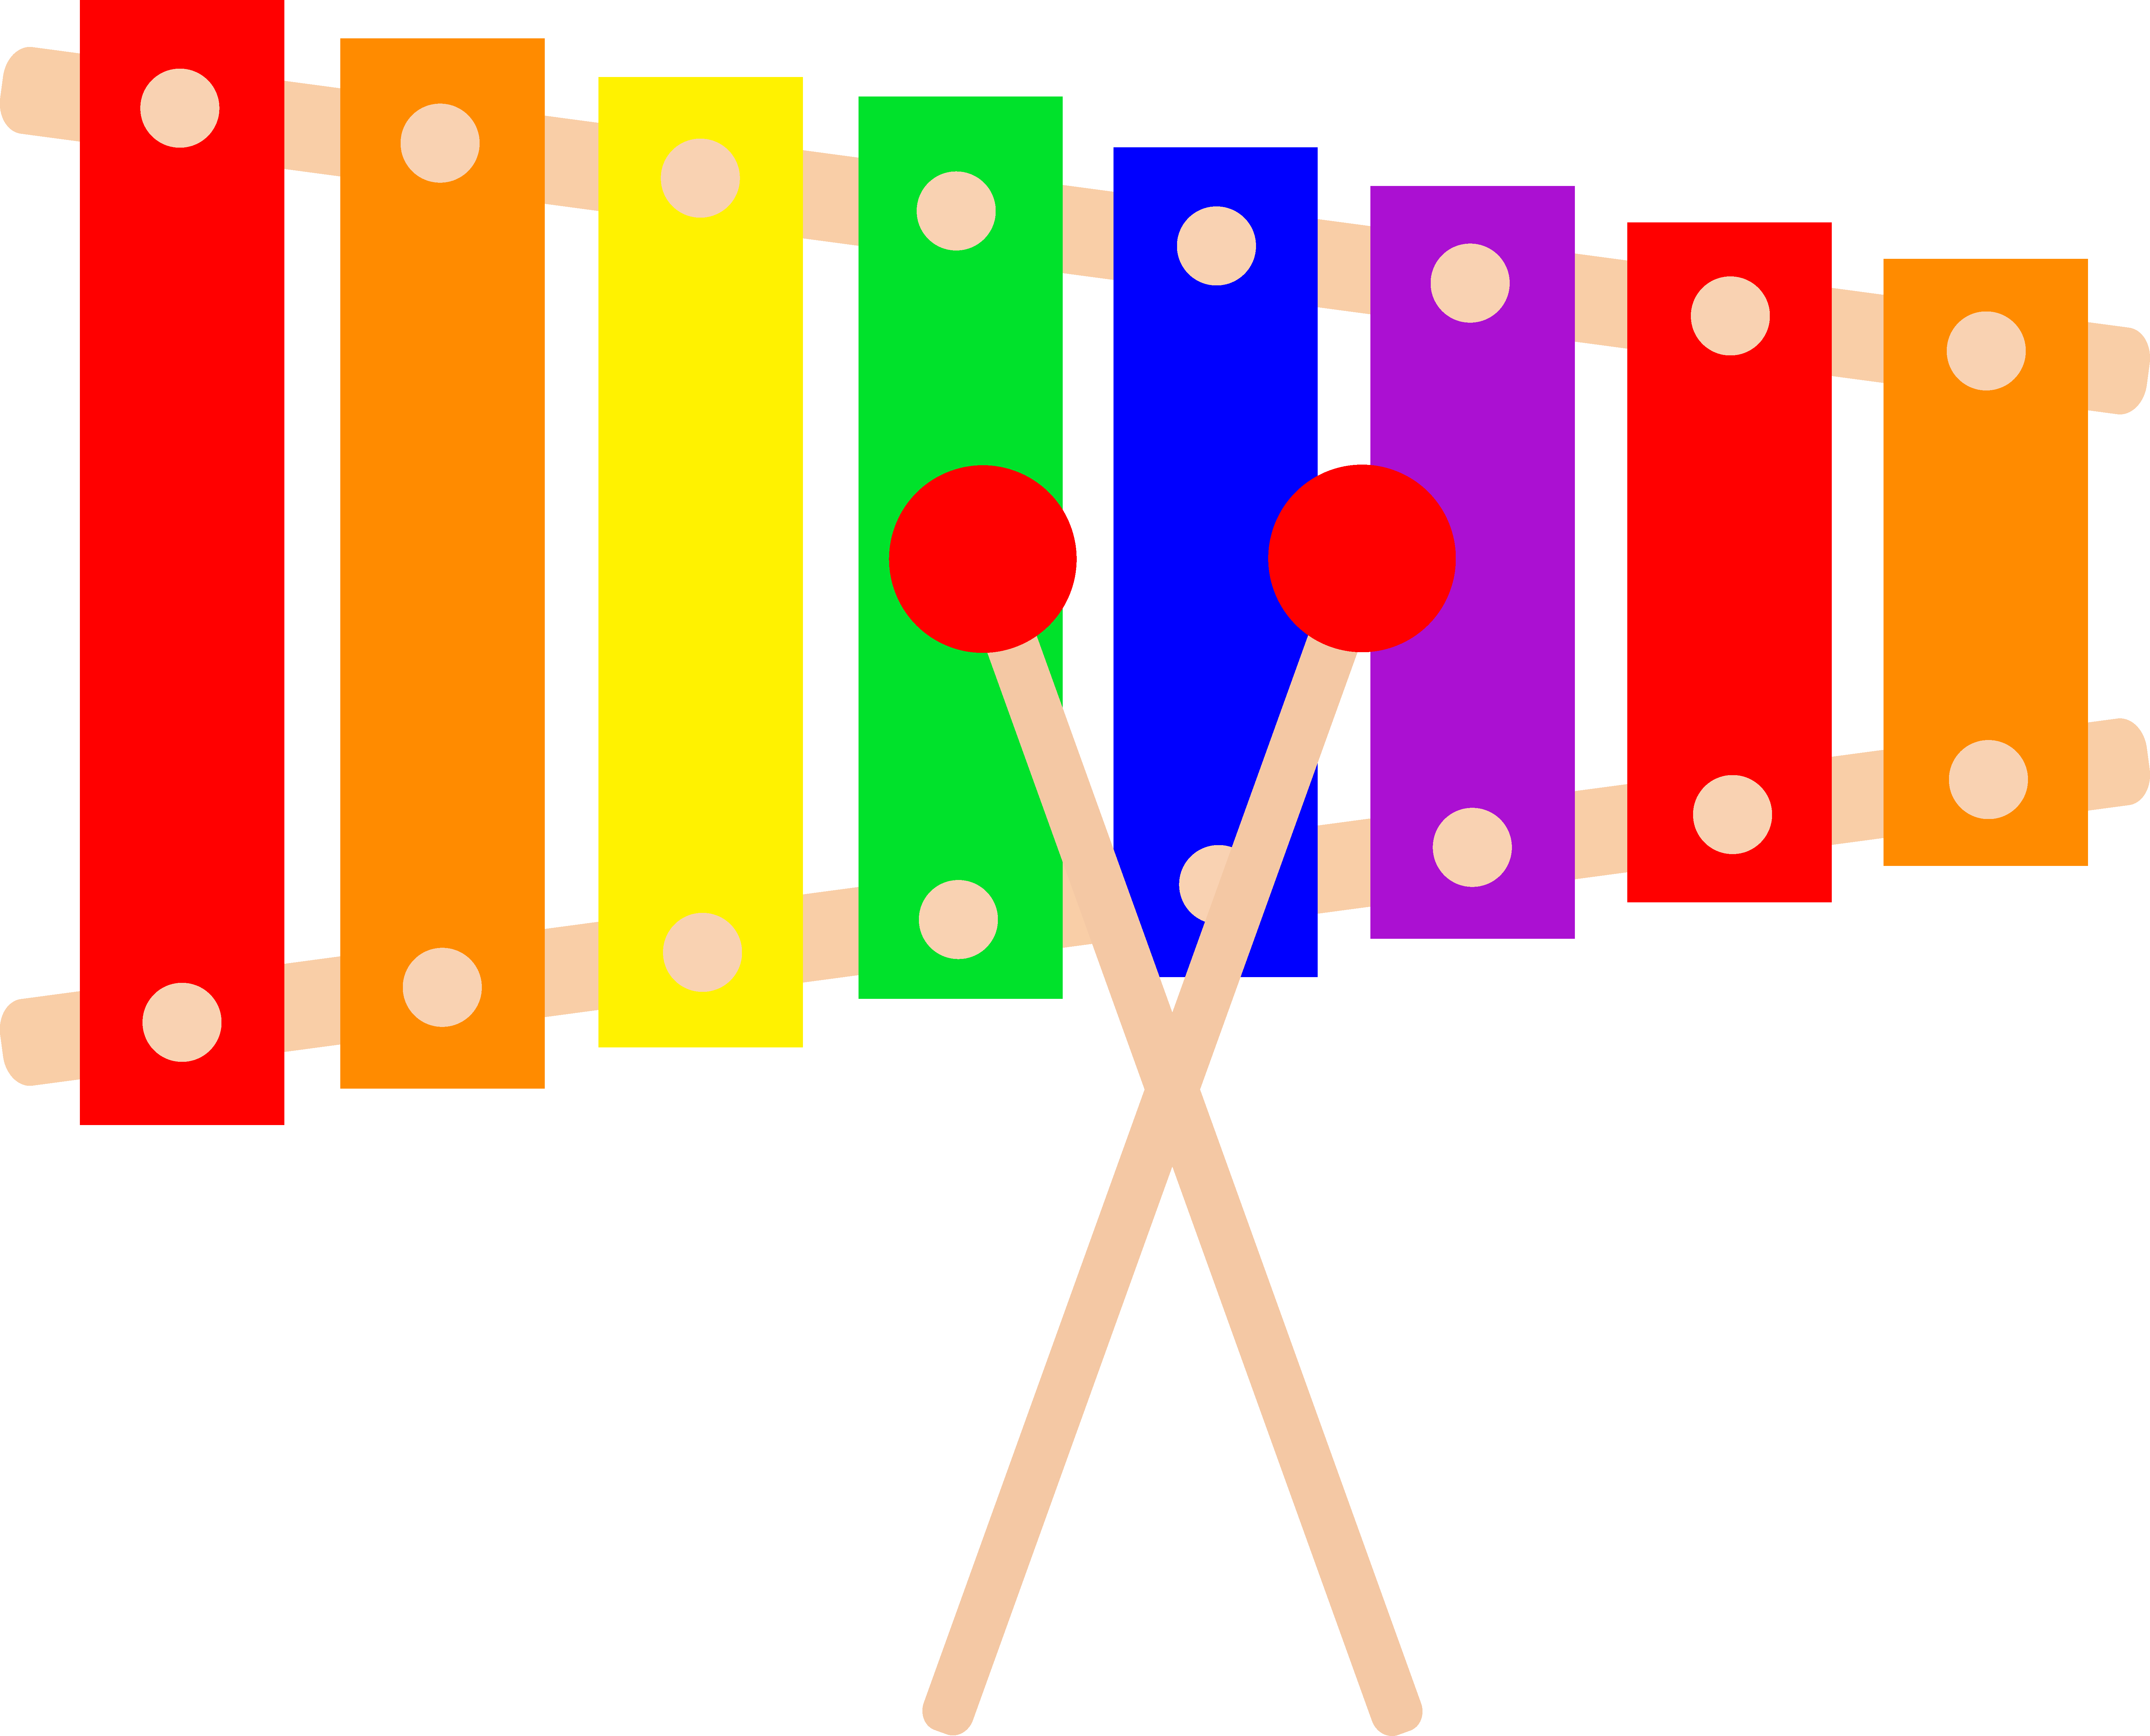 Xylophone PNG - 160